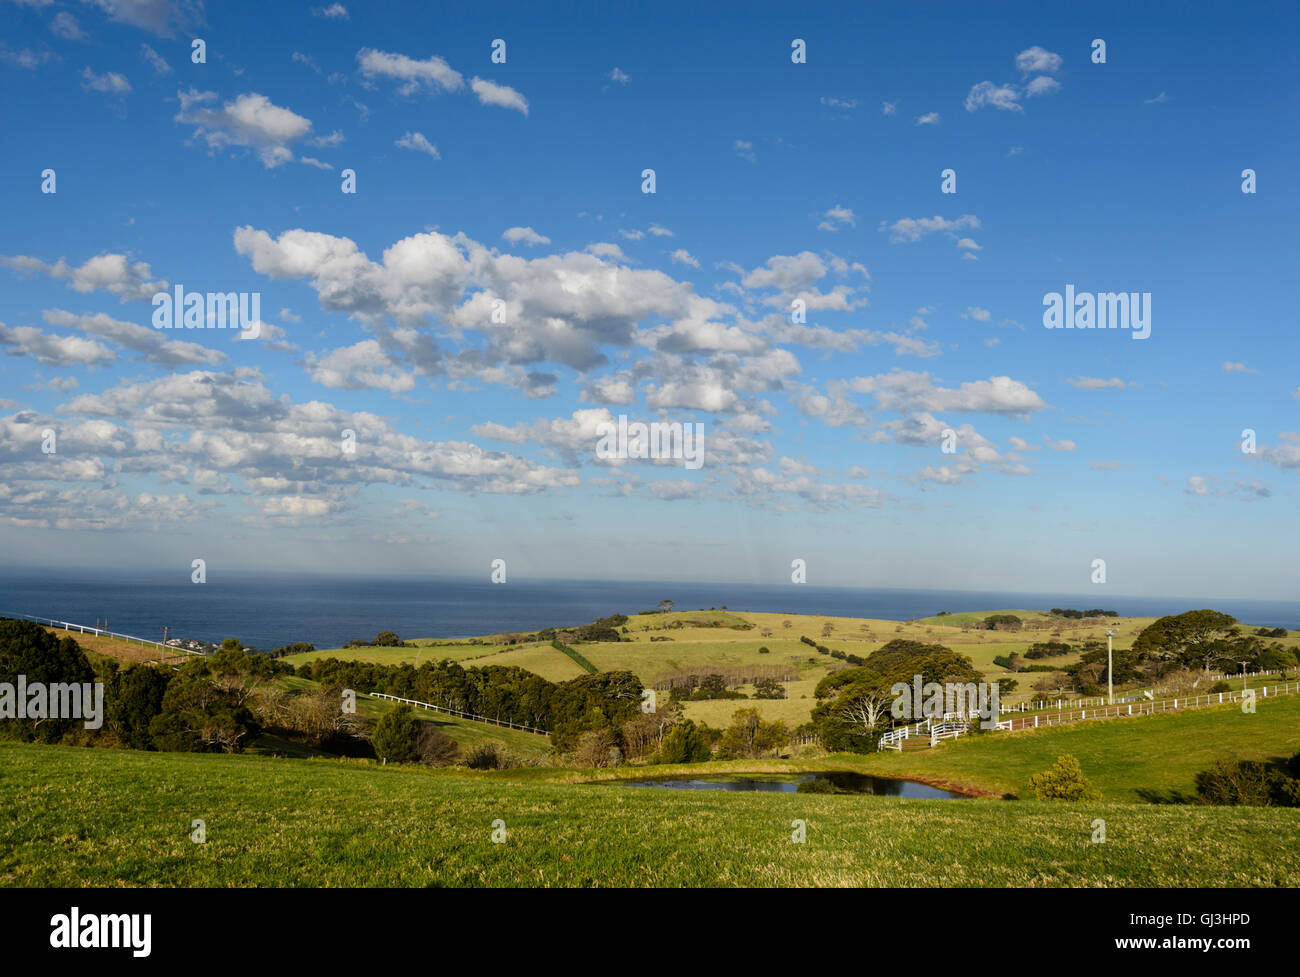 View of green pastures in the rolling countryside above Kiama, Illawarra Coast, New South Wales, NSW, Australia - Stock Image